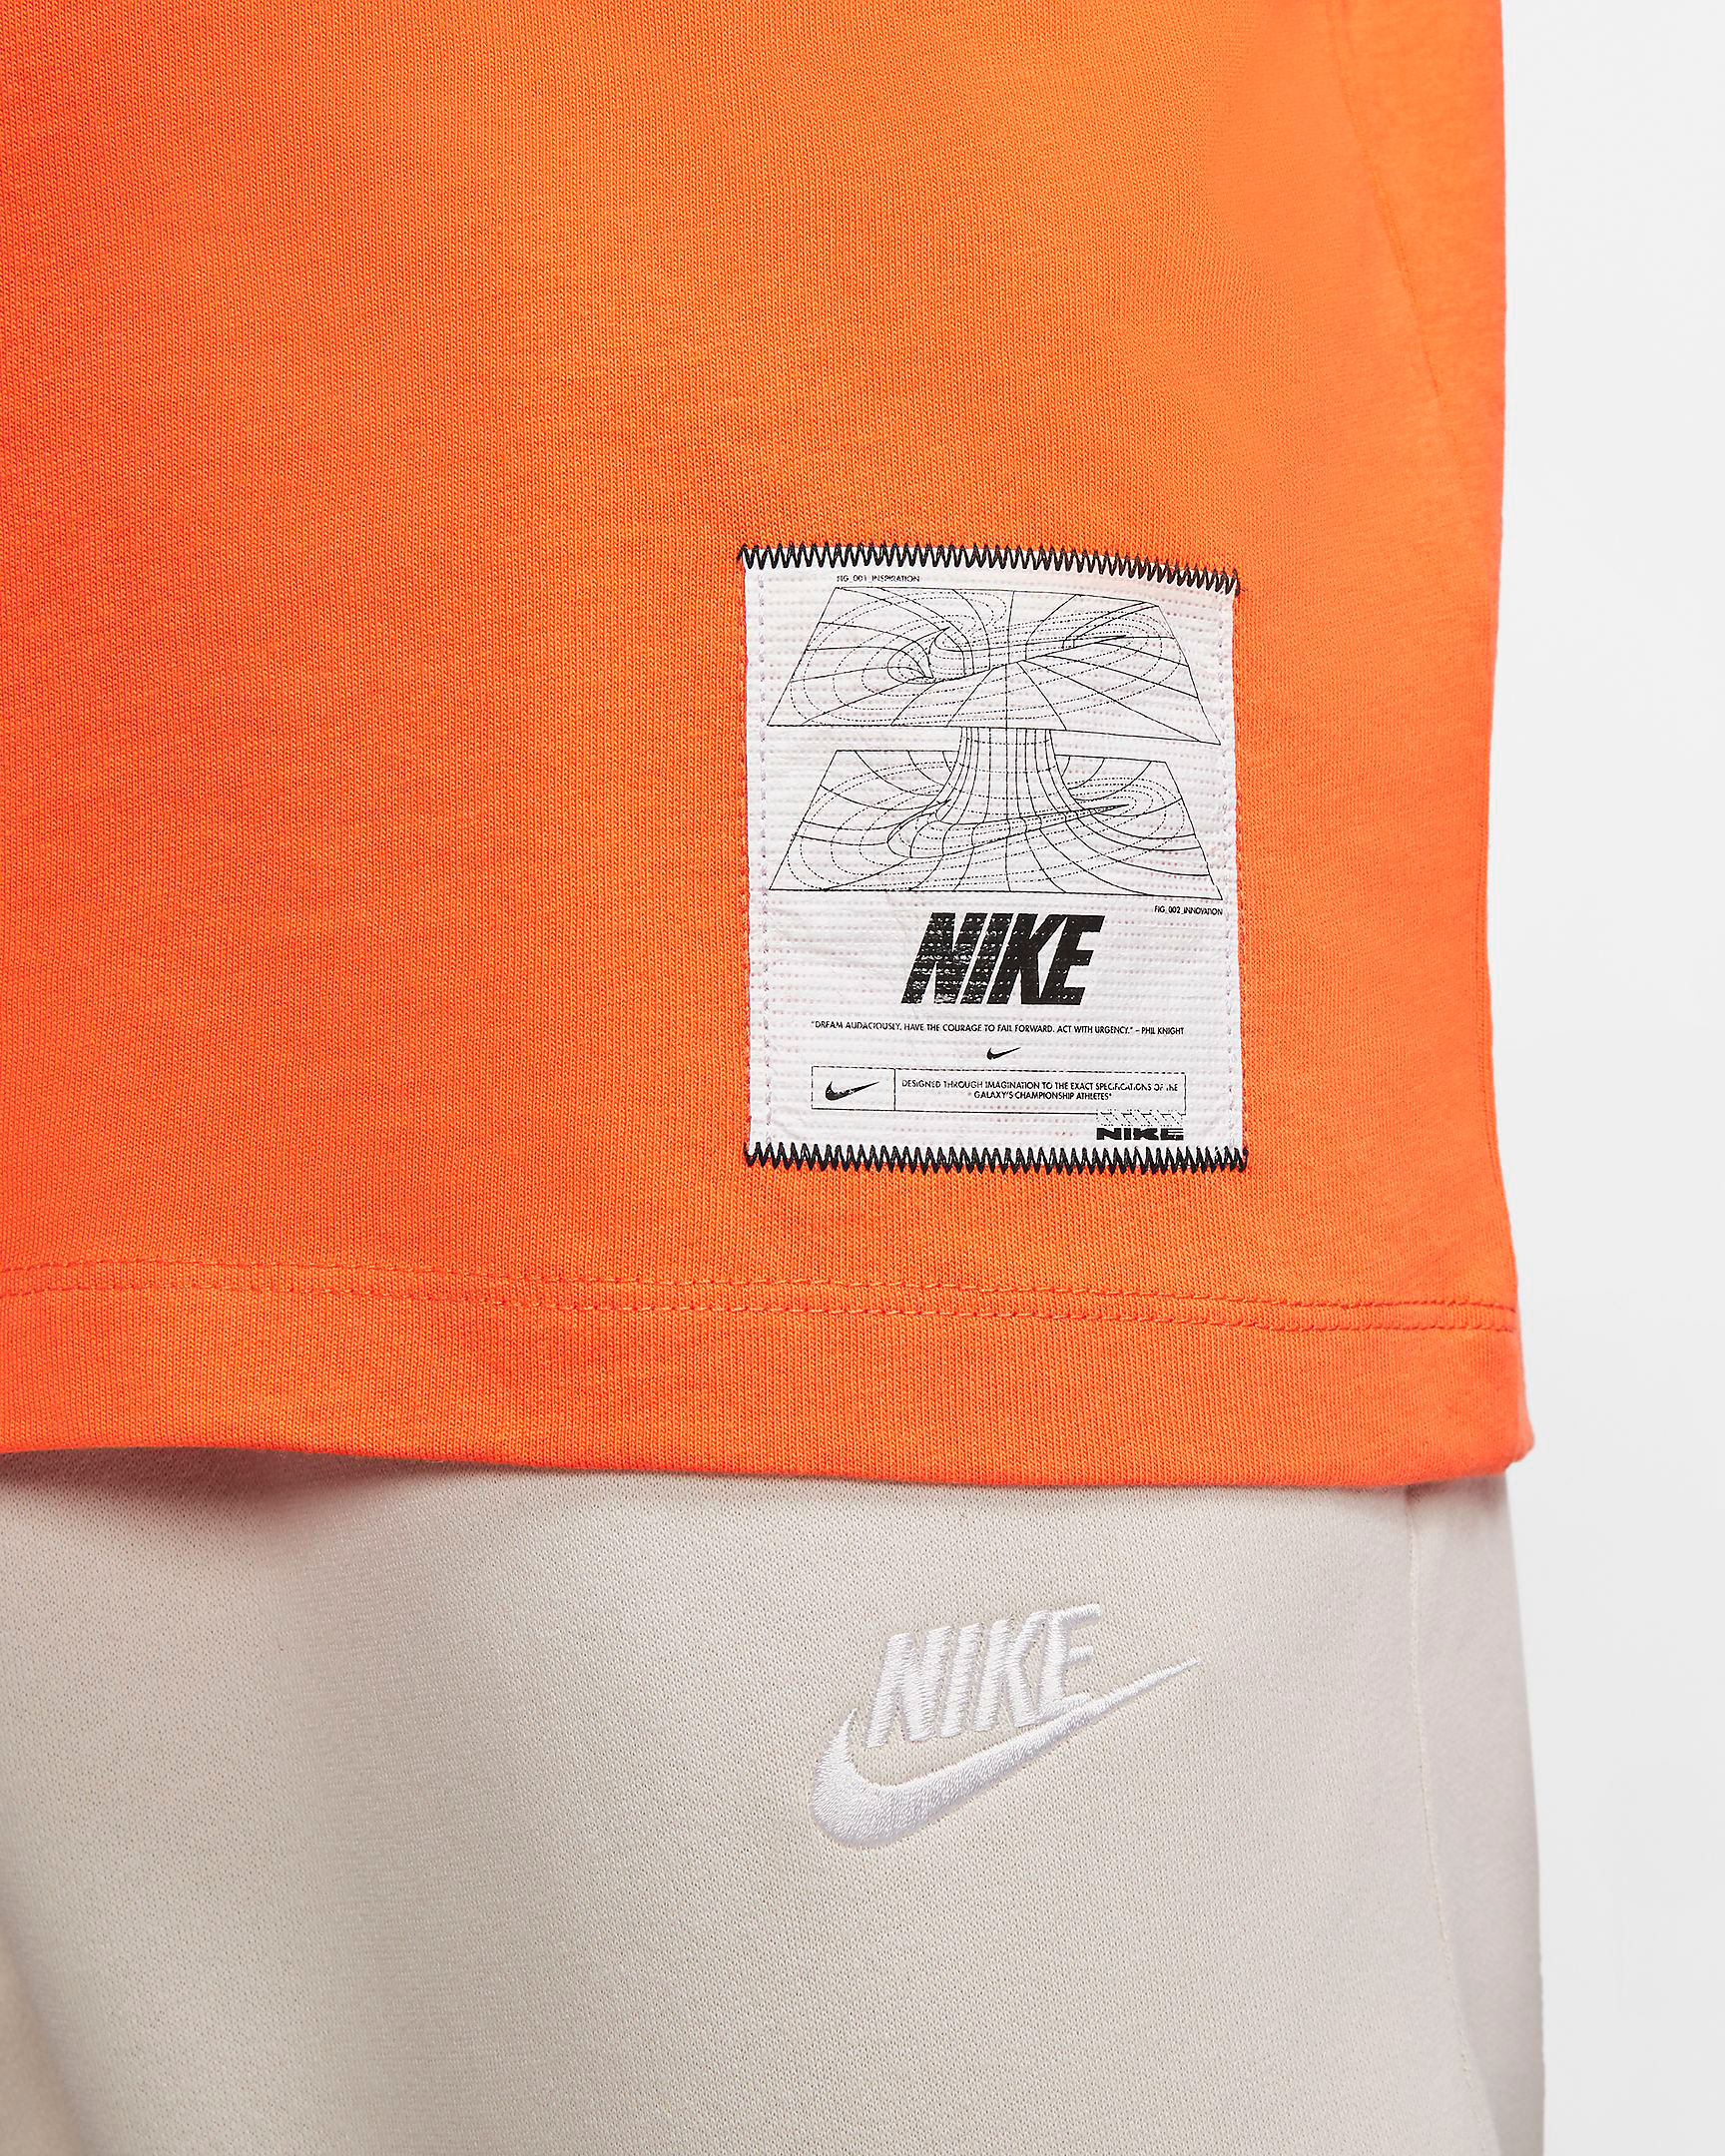 nike-supernova-shirt-orange-5